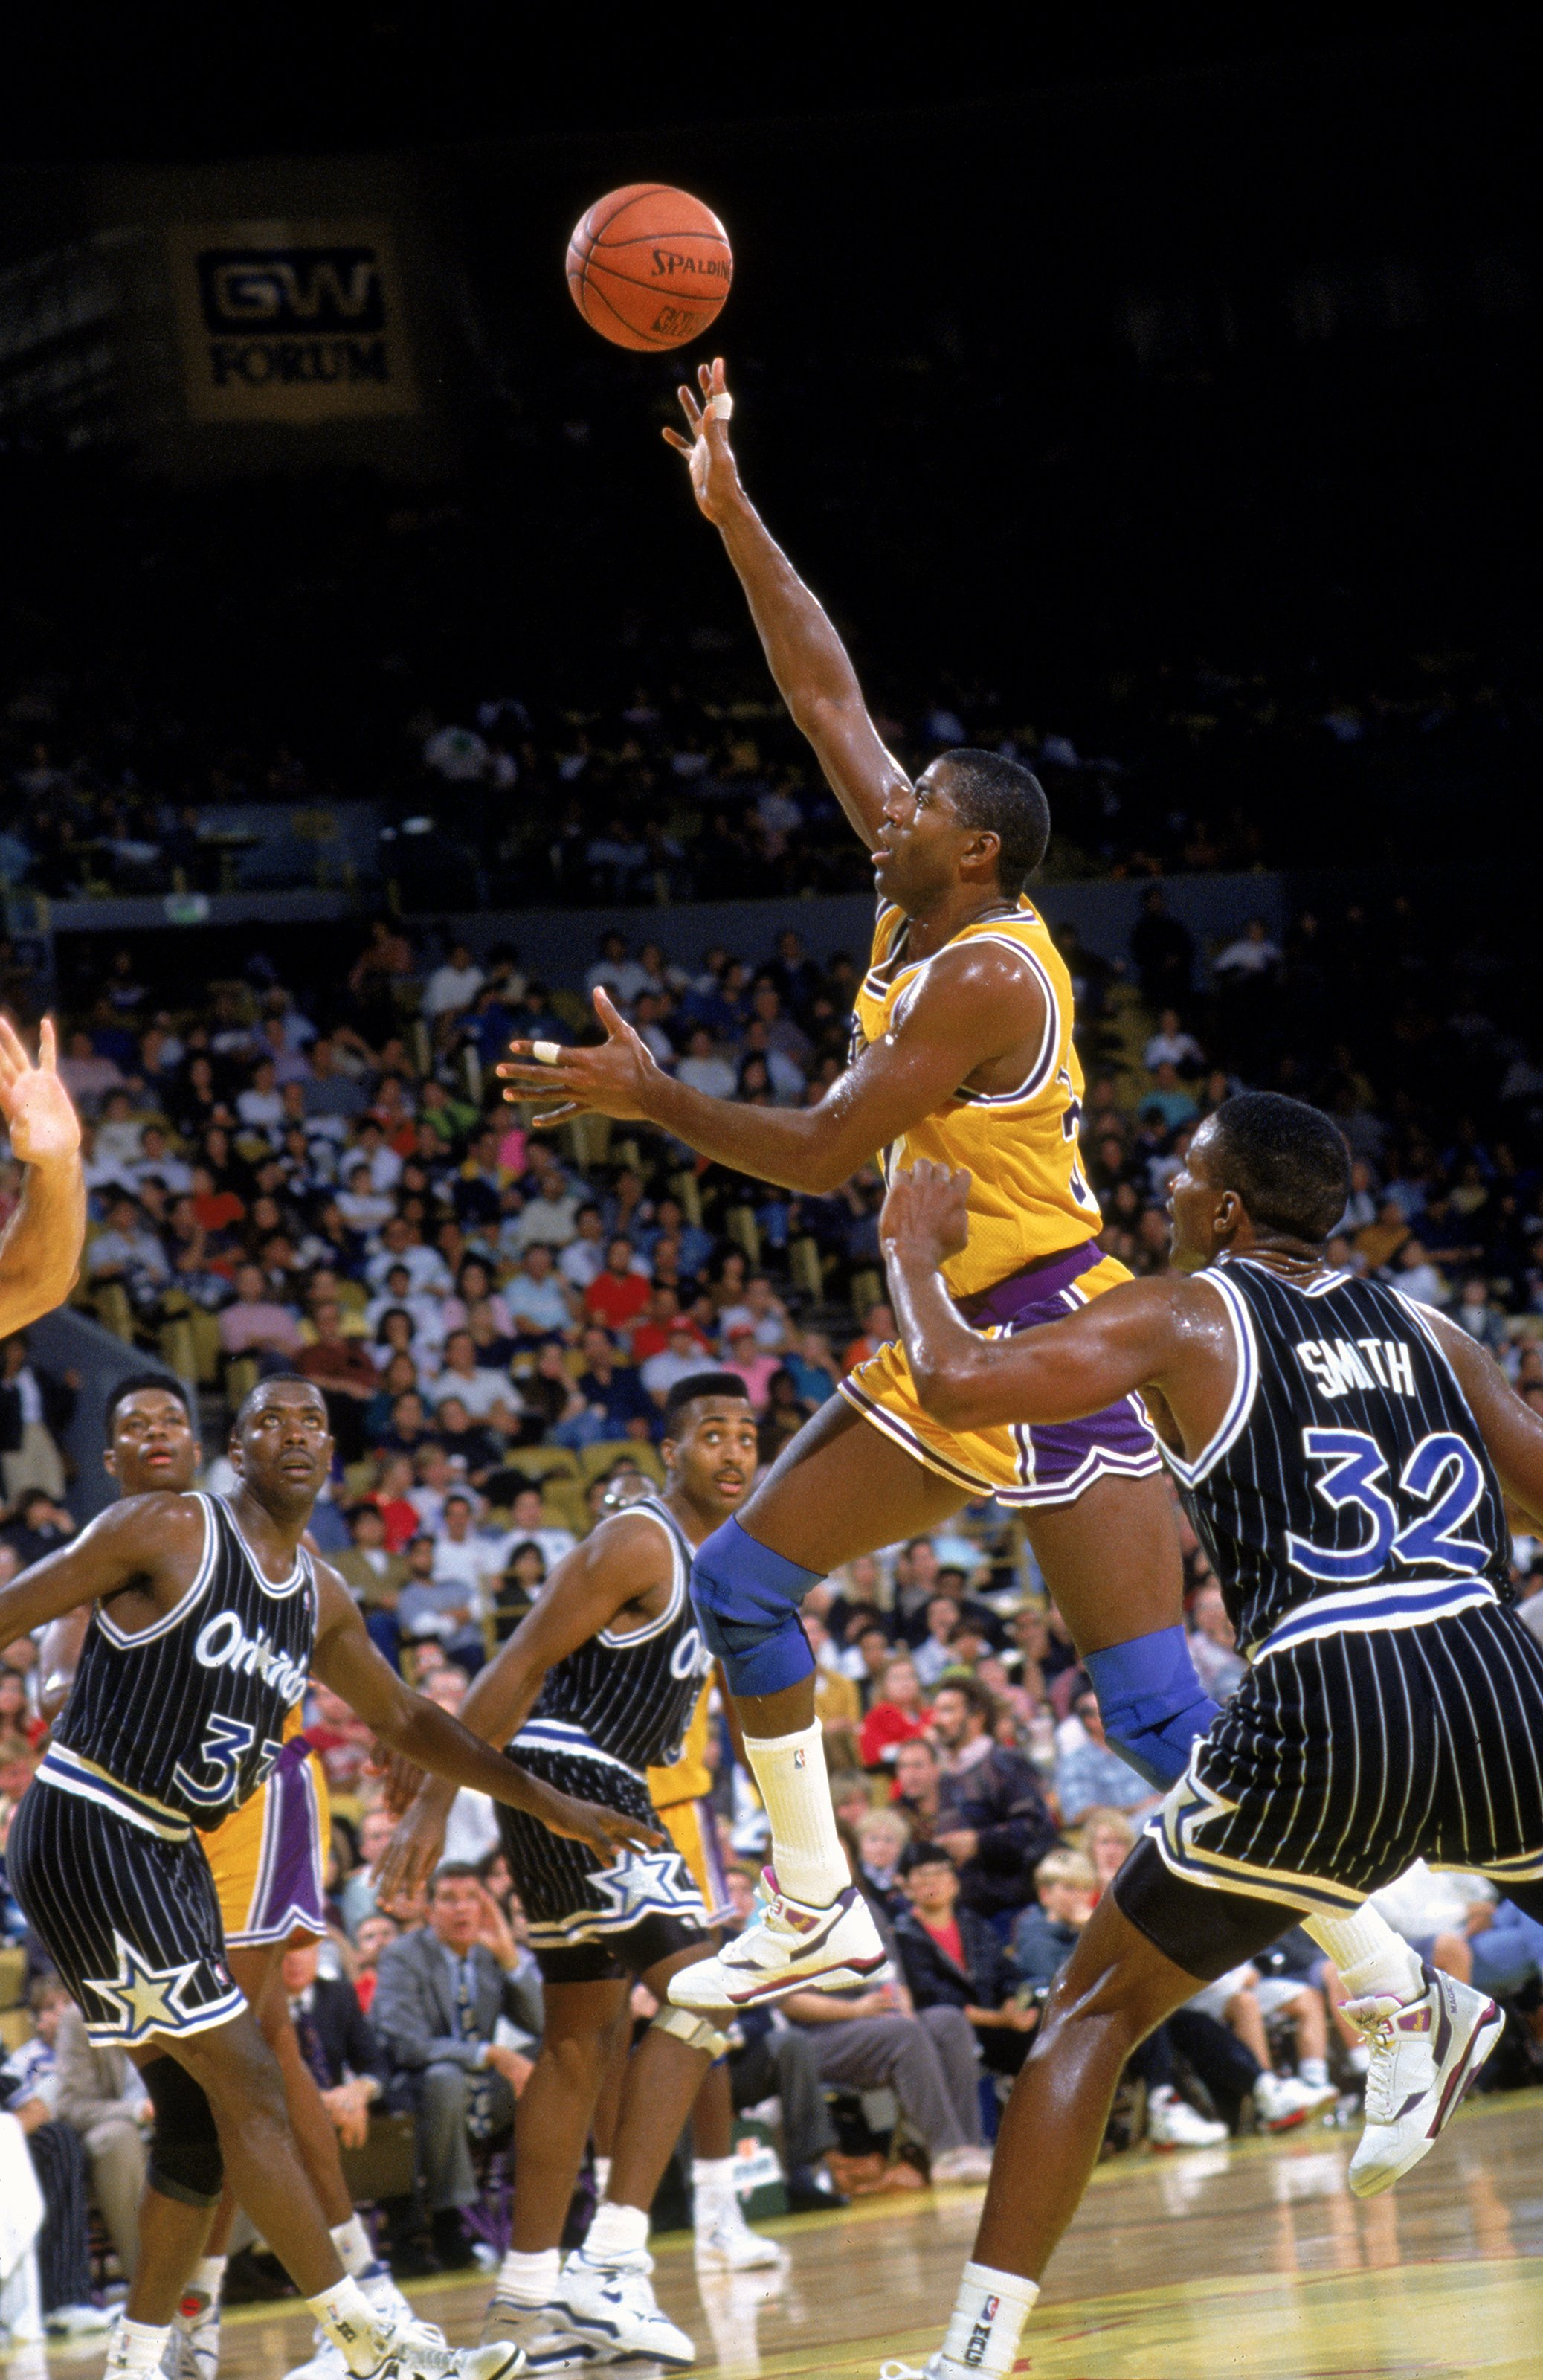 1990: Magic Johnson #32 of the Los Angeles Lakers makes a lay-up during a game against the Orlando Magic.   Mandatory Credit: Stephen Dunn  /Allsport